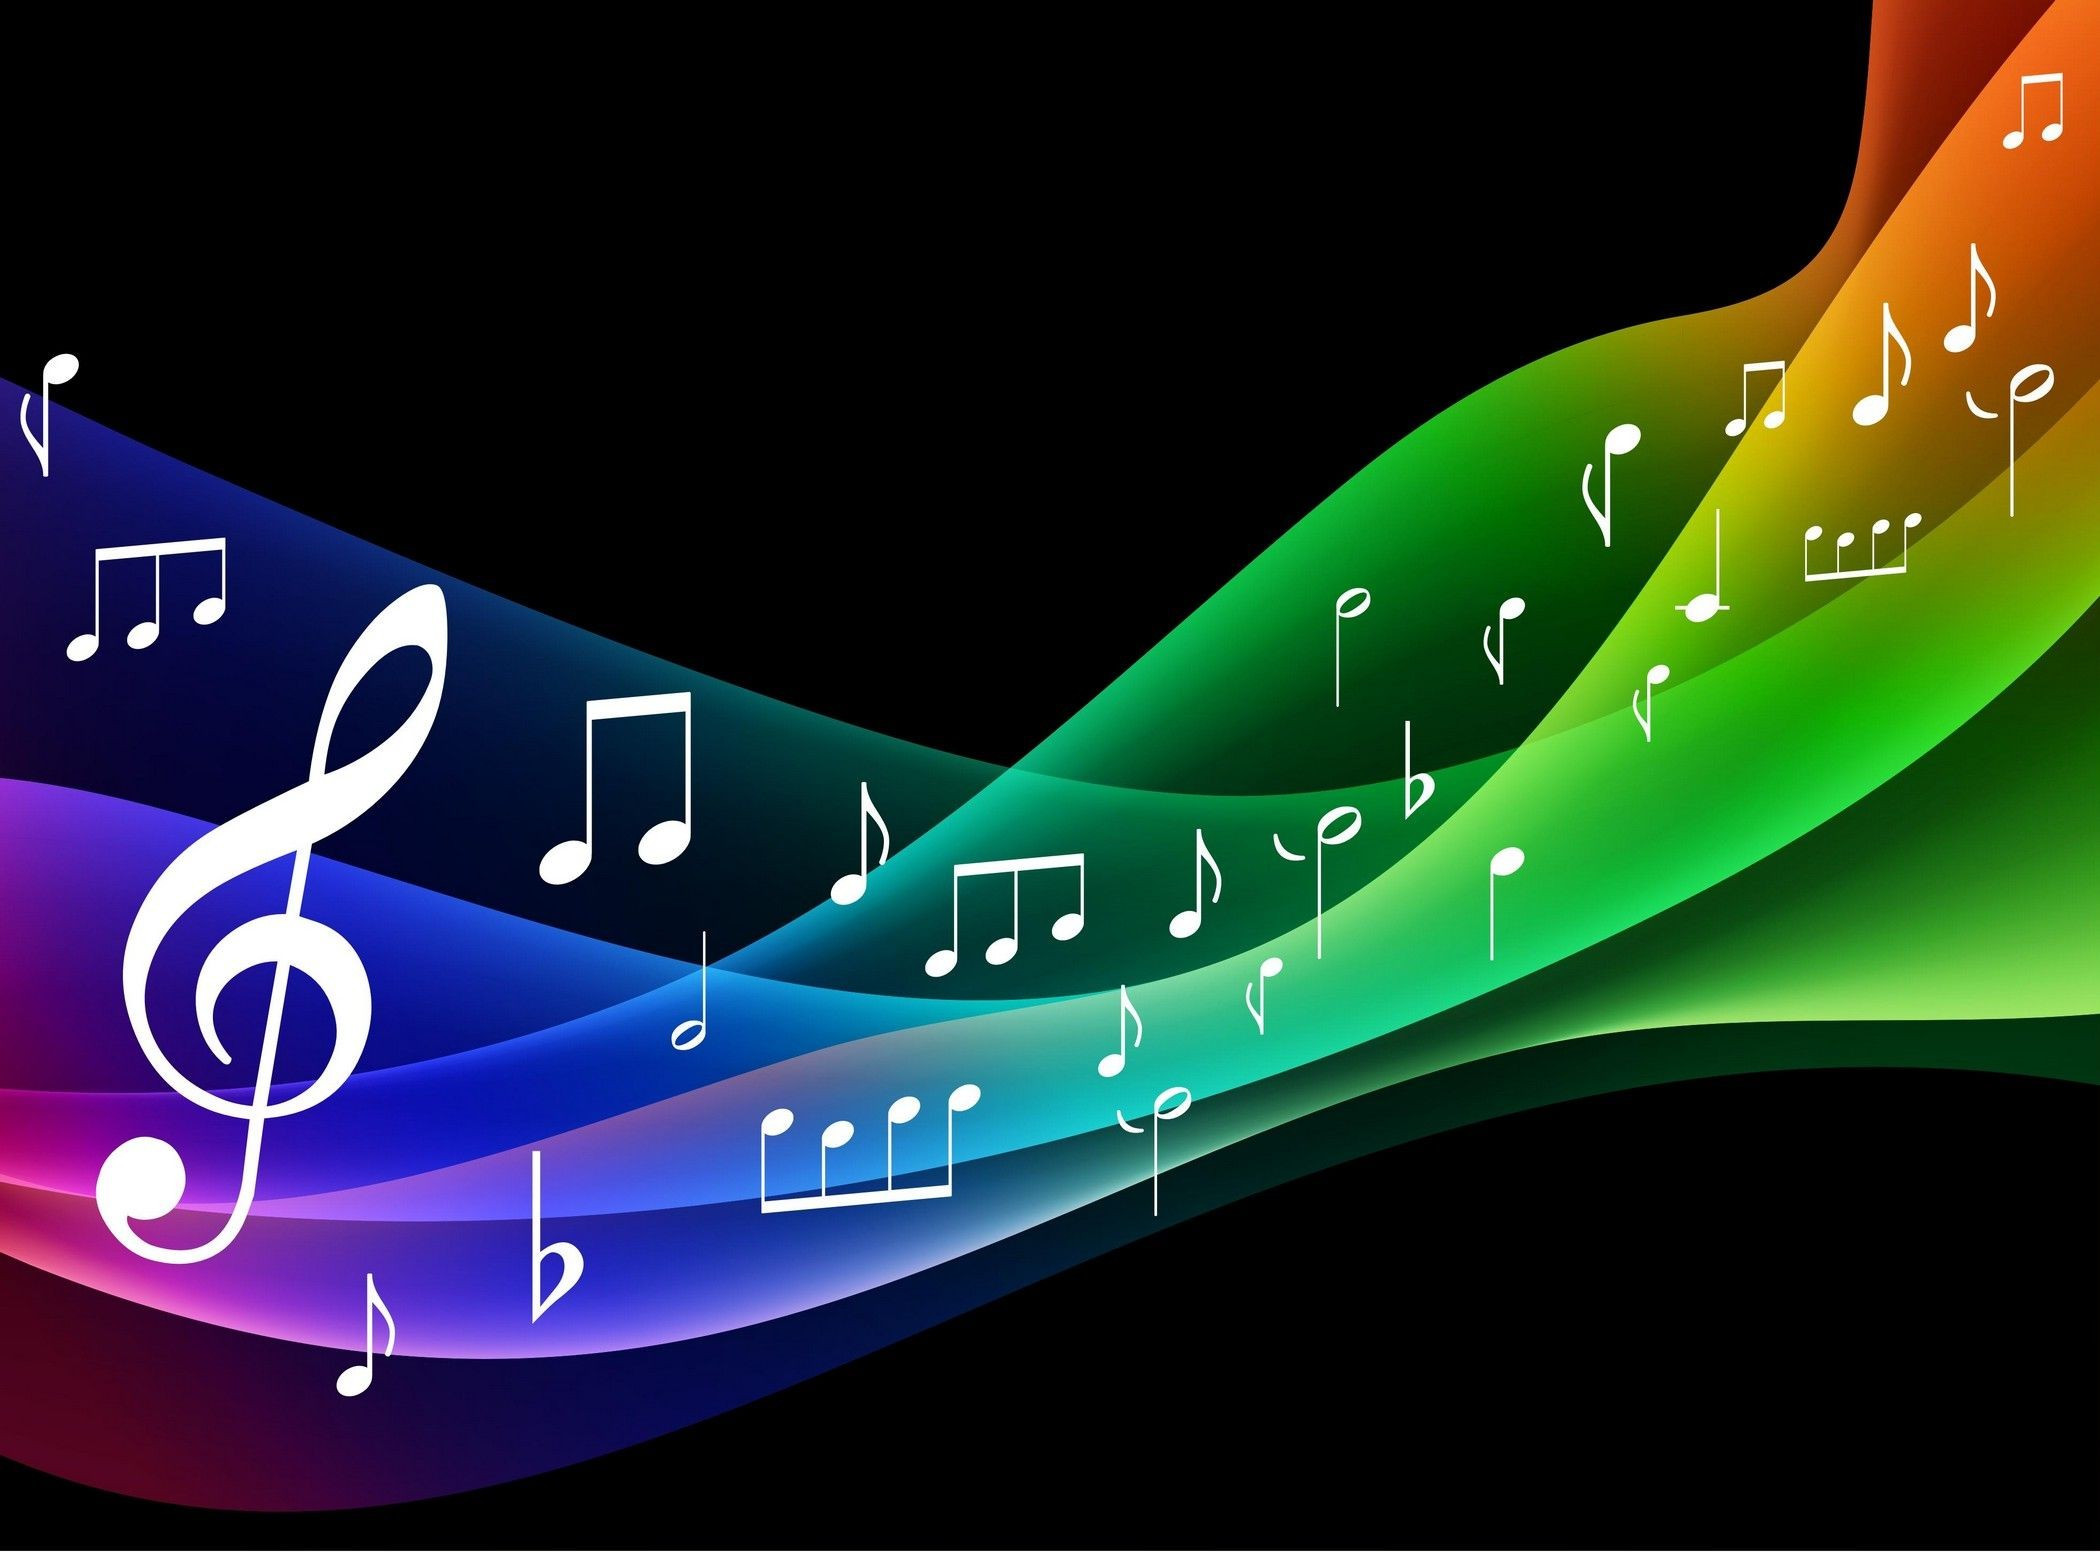 Rainbow Music Notes Background Hd Wallpaper Background Images: Musical Background ·① Download Free Beautiful Backgrounds